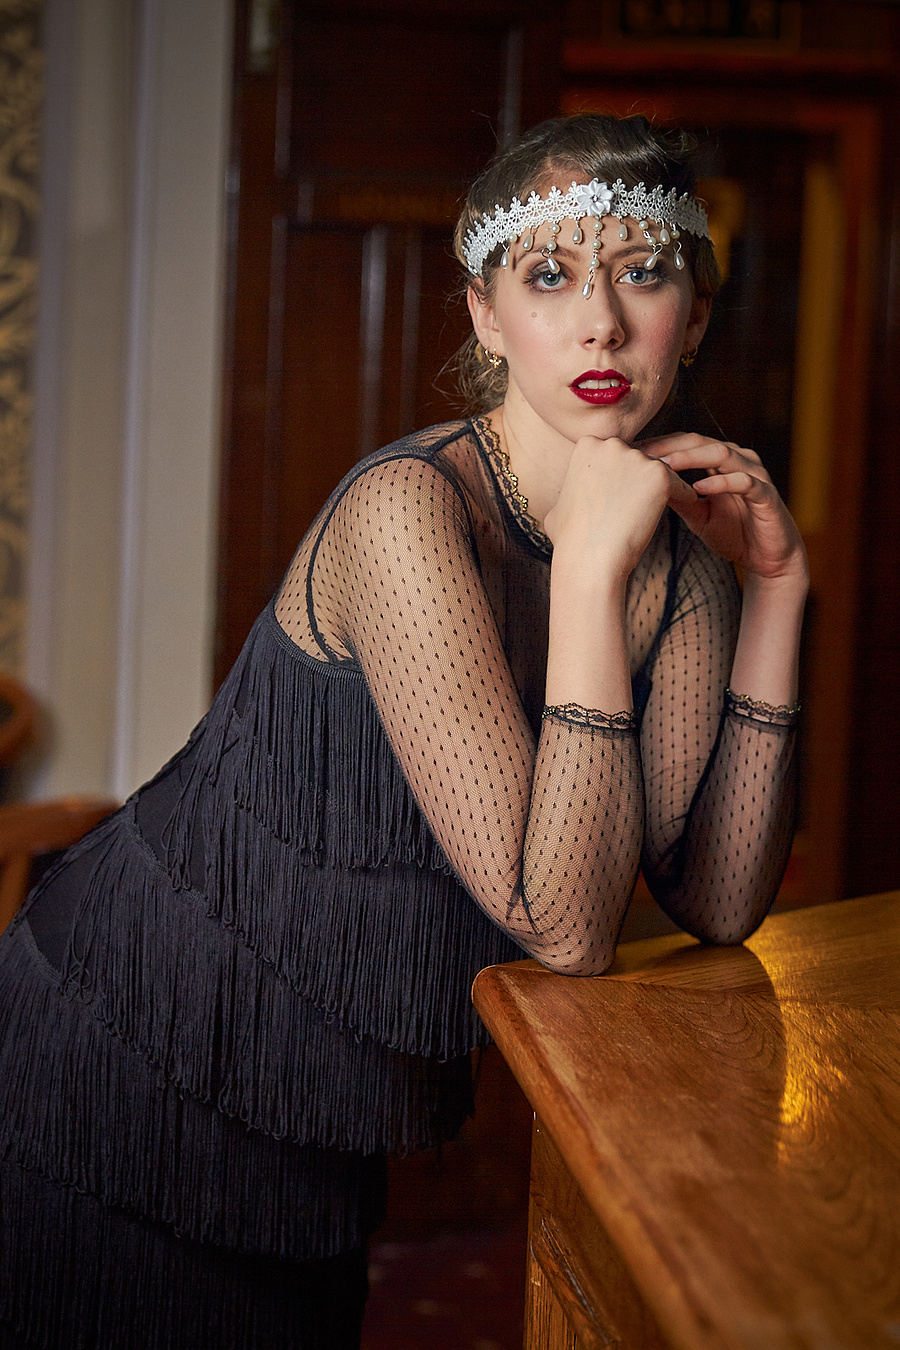 Roaring 20s / Photography by Nils, Makeup by Vicky Stuart / Uploaded 14th March 2020 @ 04:26 PM